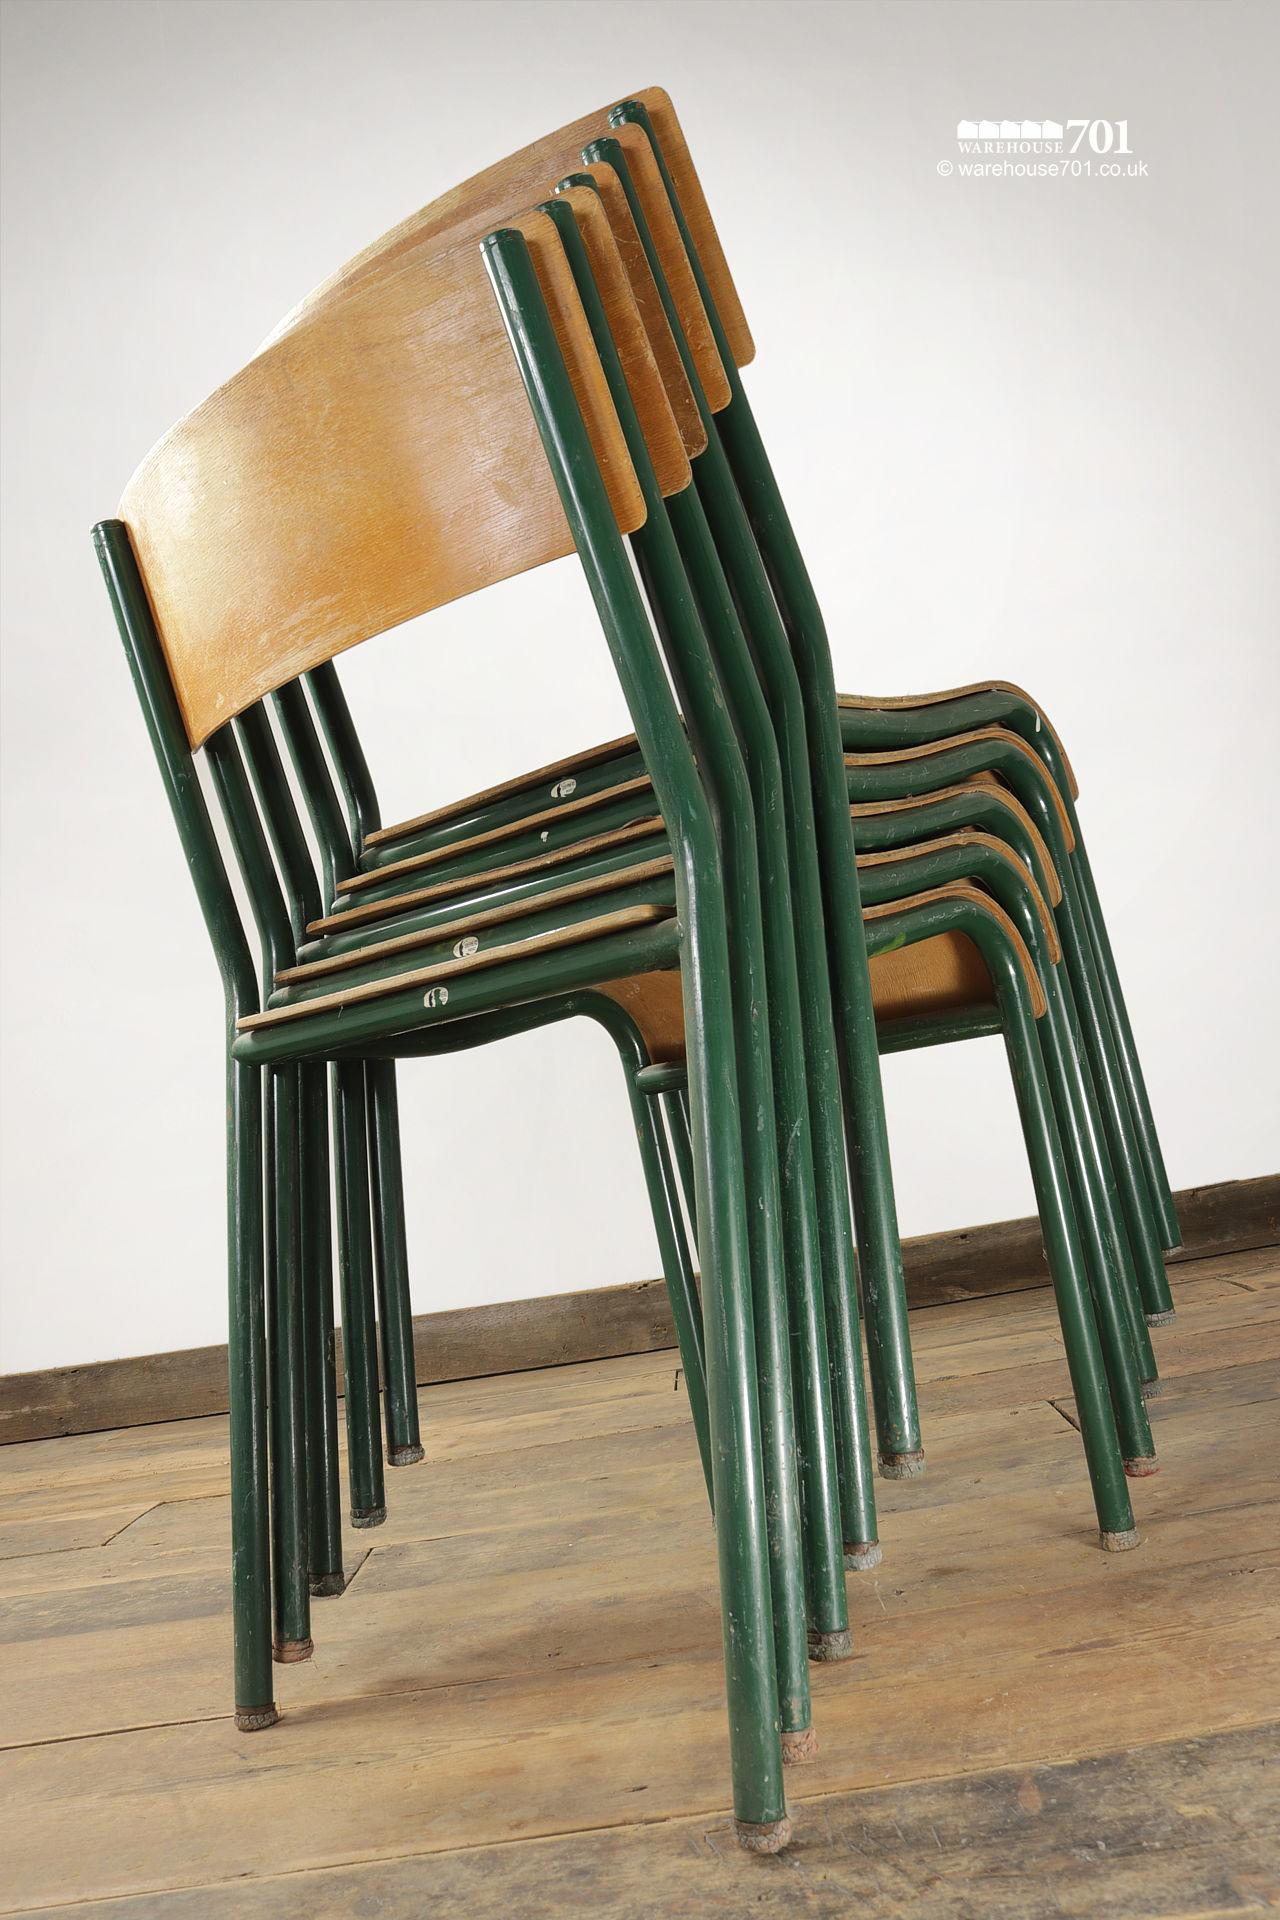 Old Green Tubular Steel and Ply Stacking Chairs #4